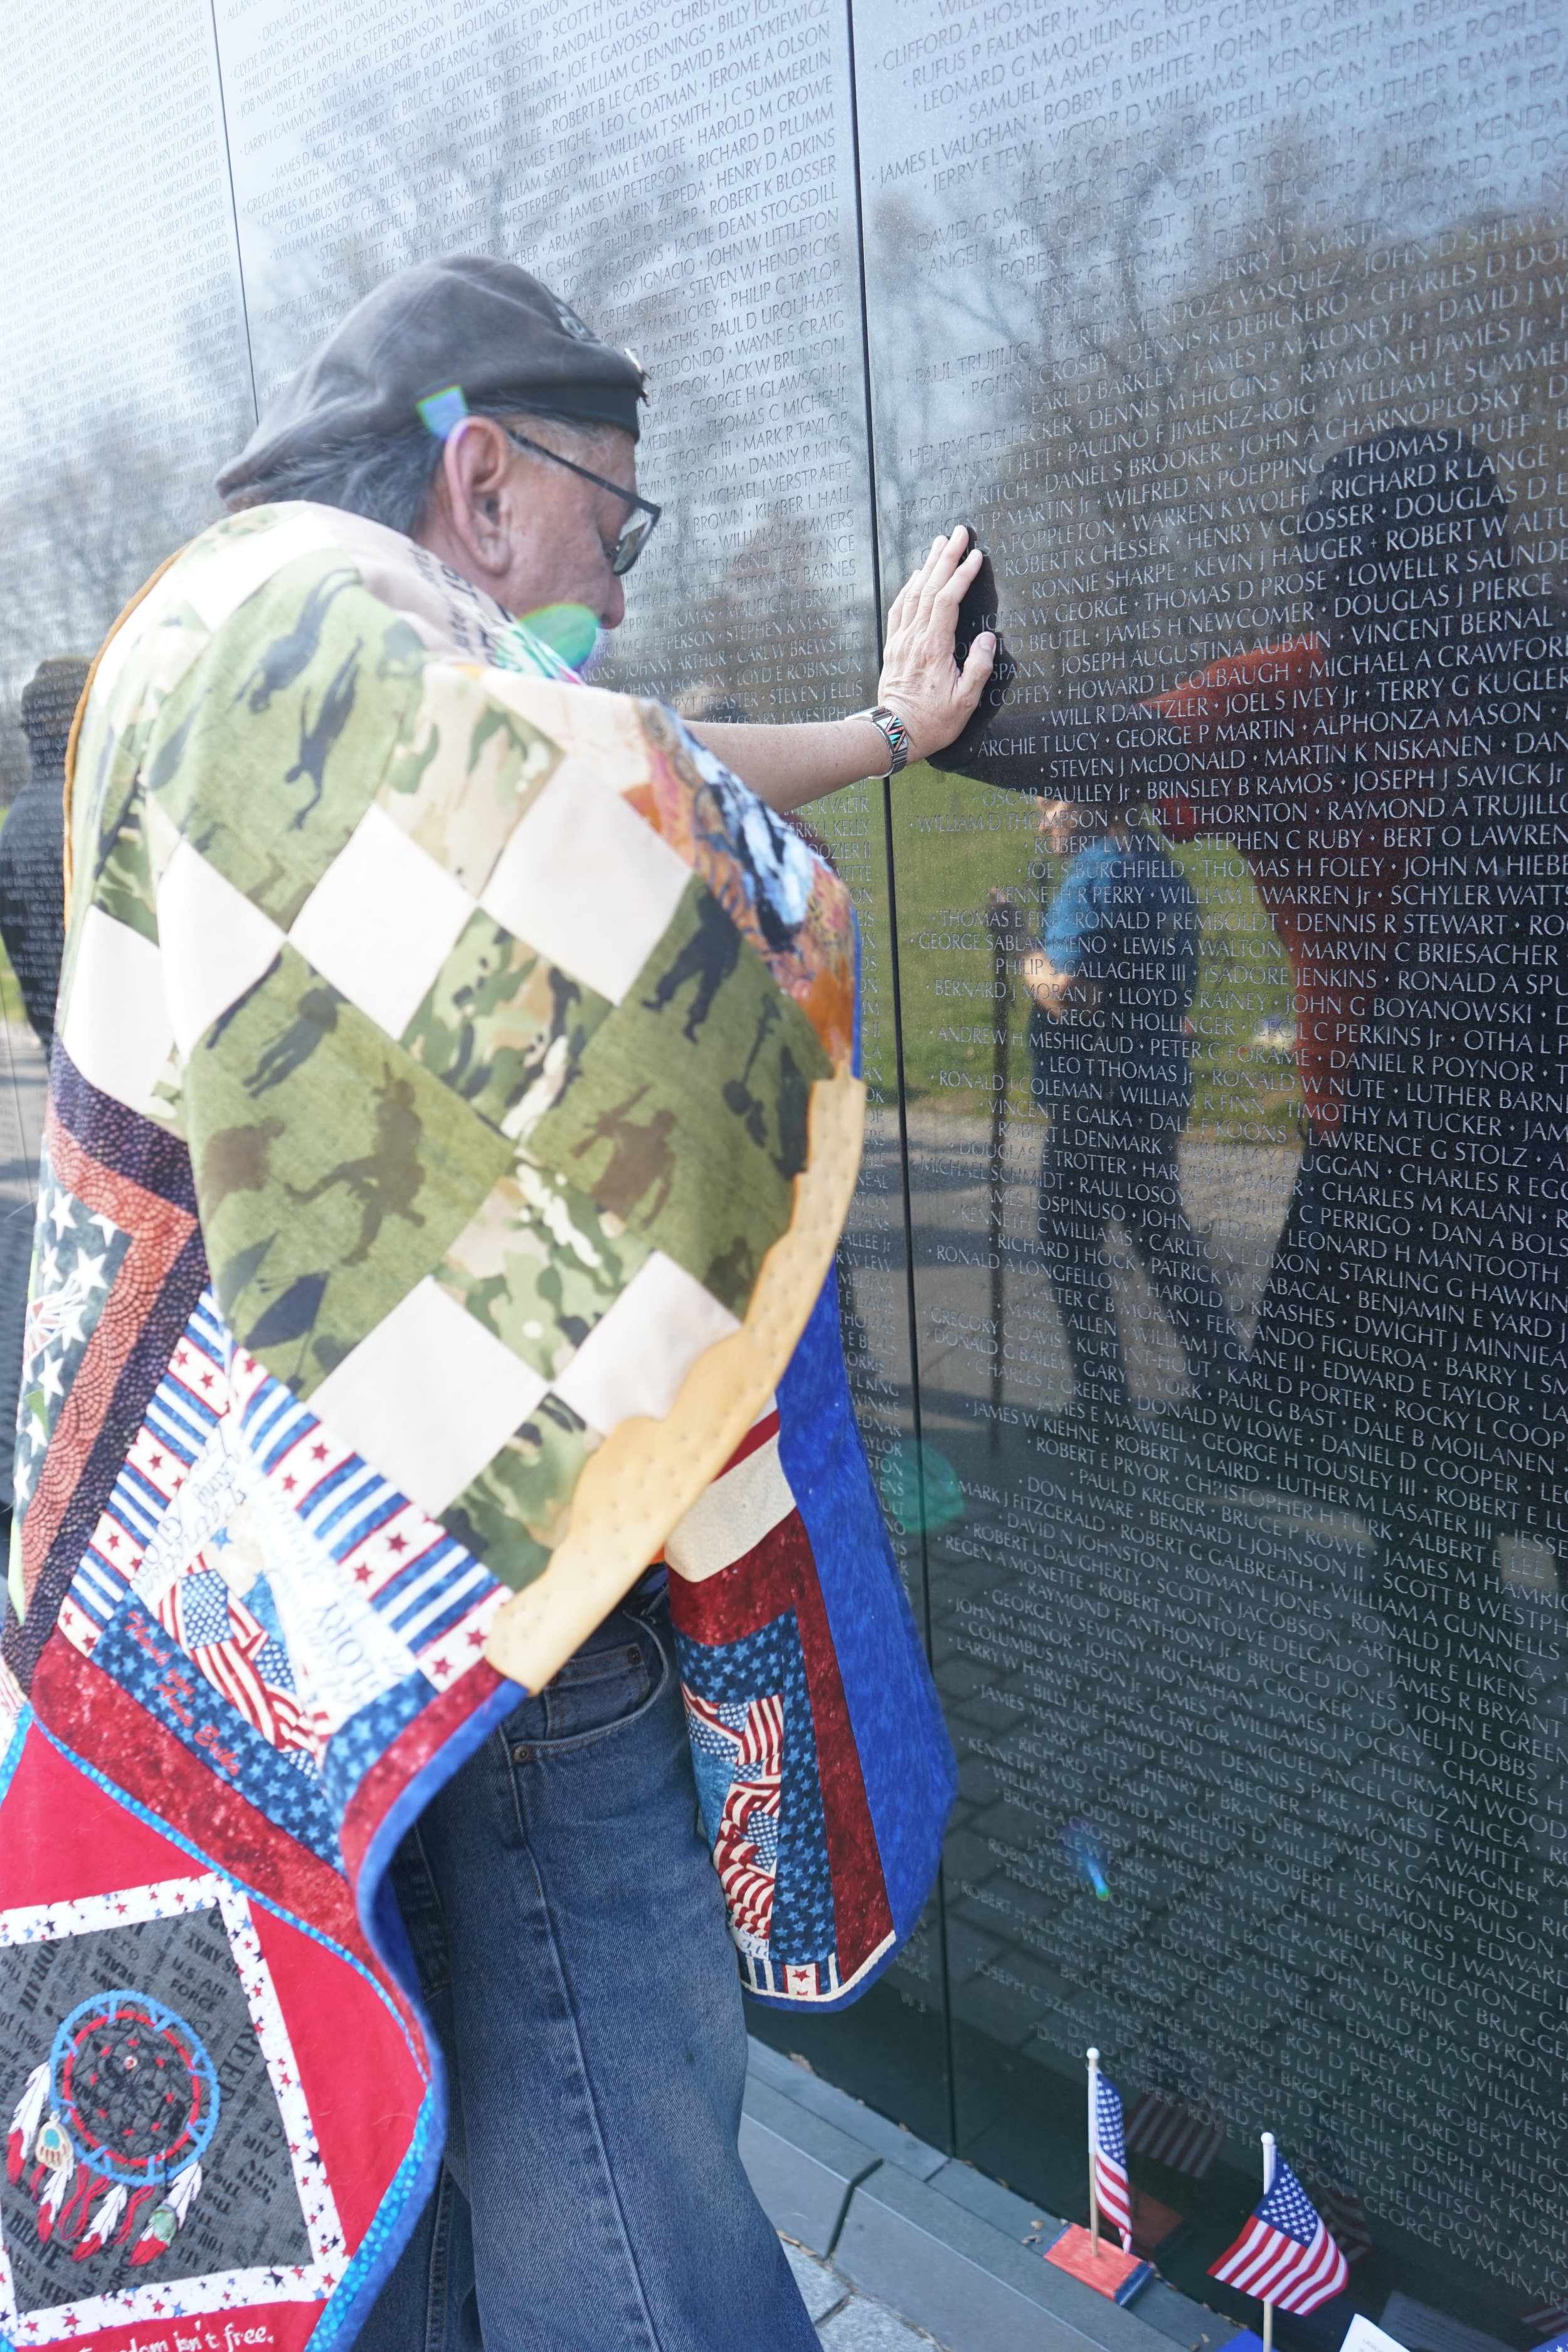 Mending Souls supports veterans by wrapping them in elders' shawls to honor their service. A shawl was presented to the veteran pictured above as he searched the names of his fallen at the Vietnam Wall in Washington, D.C.